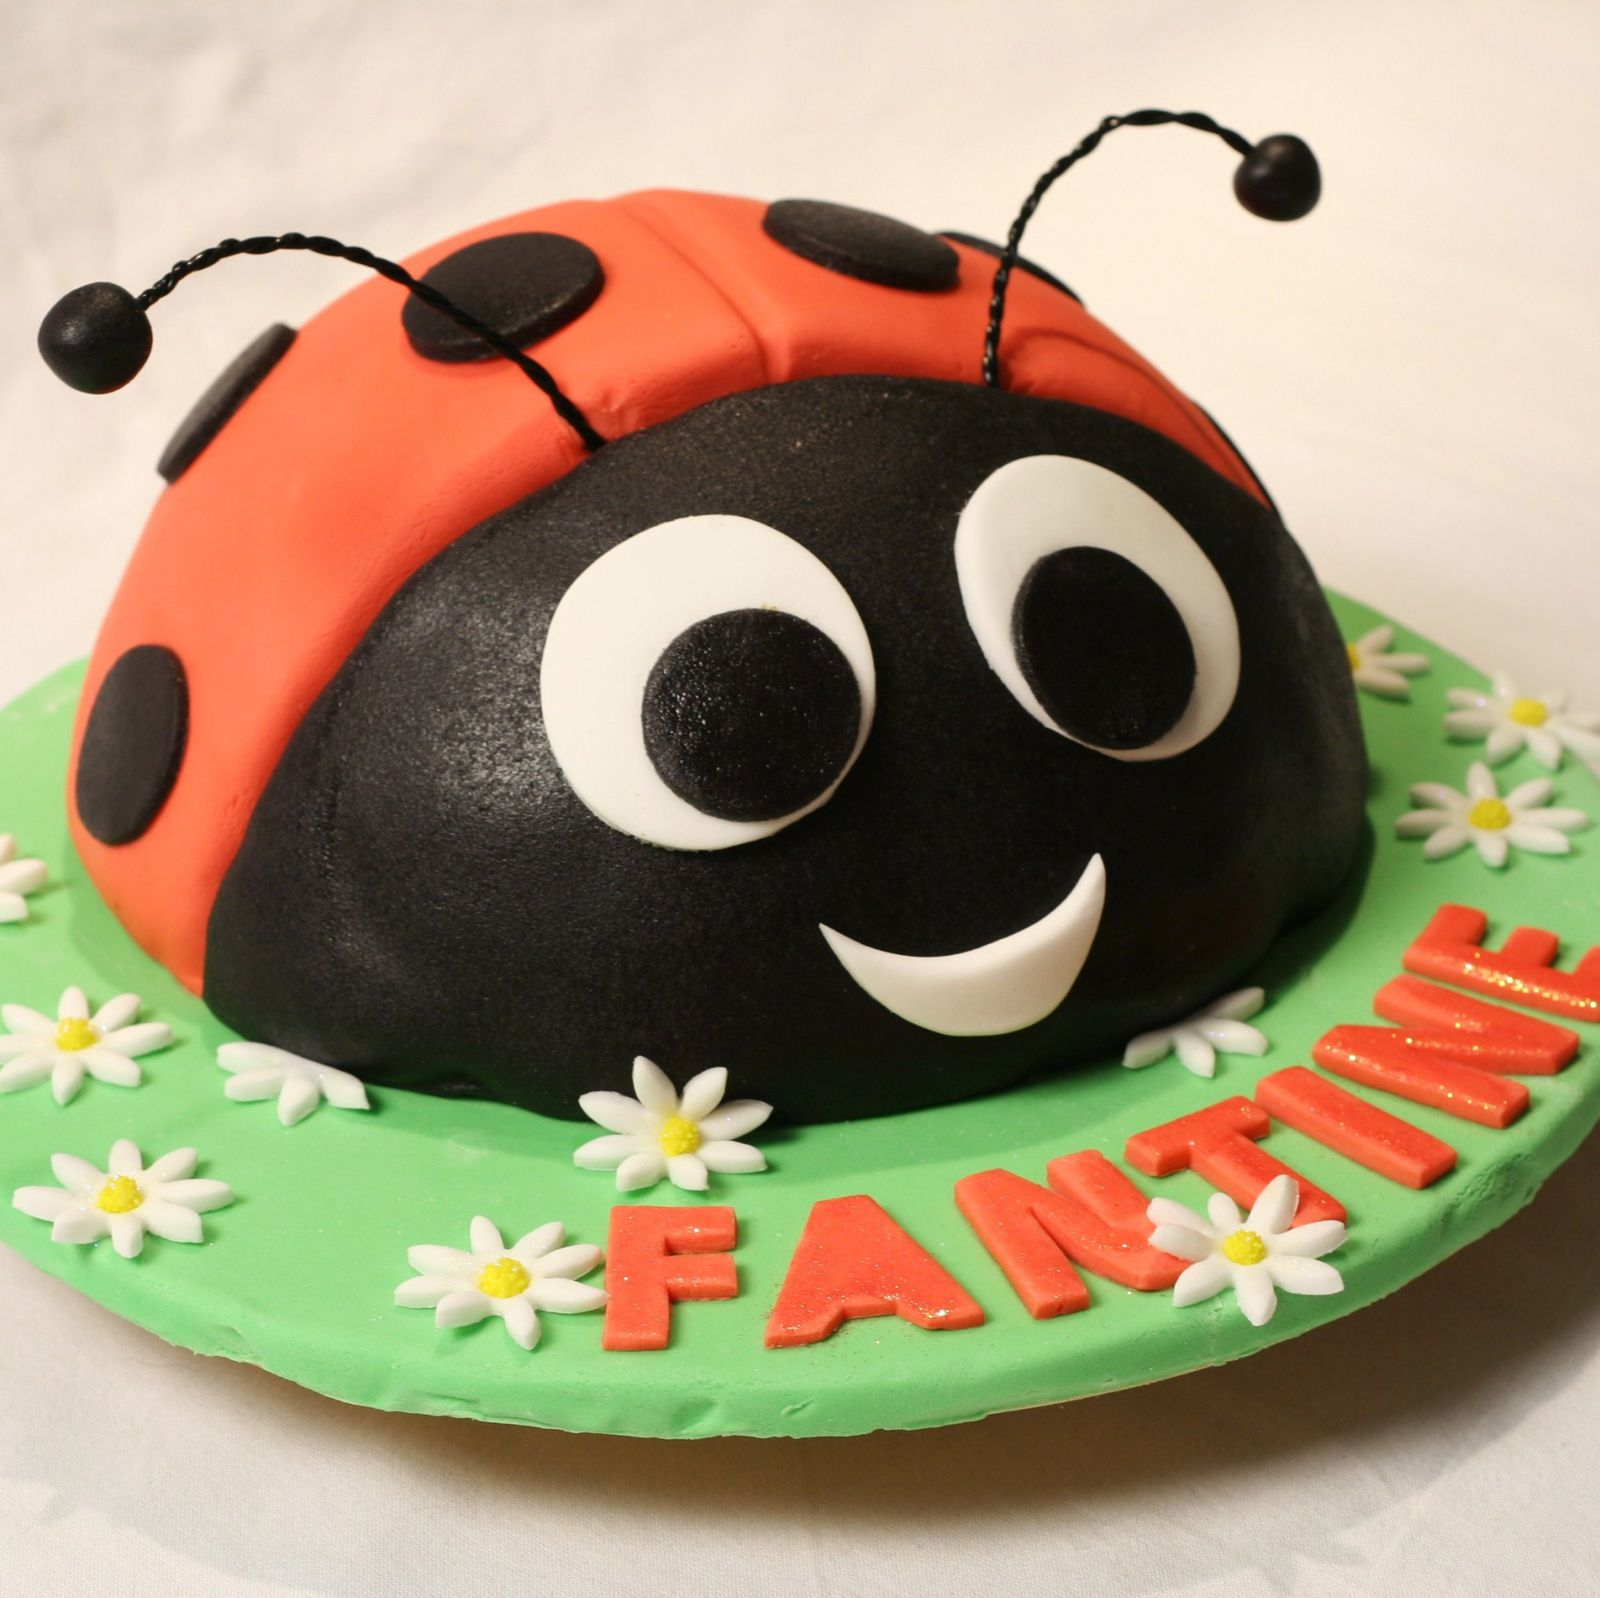 coccinelle facile en 3d ladybird cake blog de cuisine cr ative recettes popotte de manue. Black Bedroom Furniture Sets. Home Design Ideas